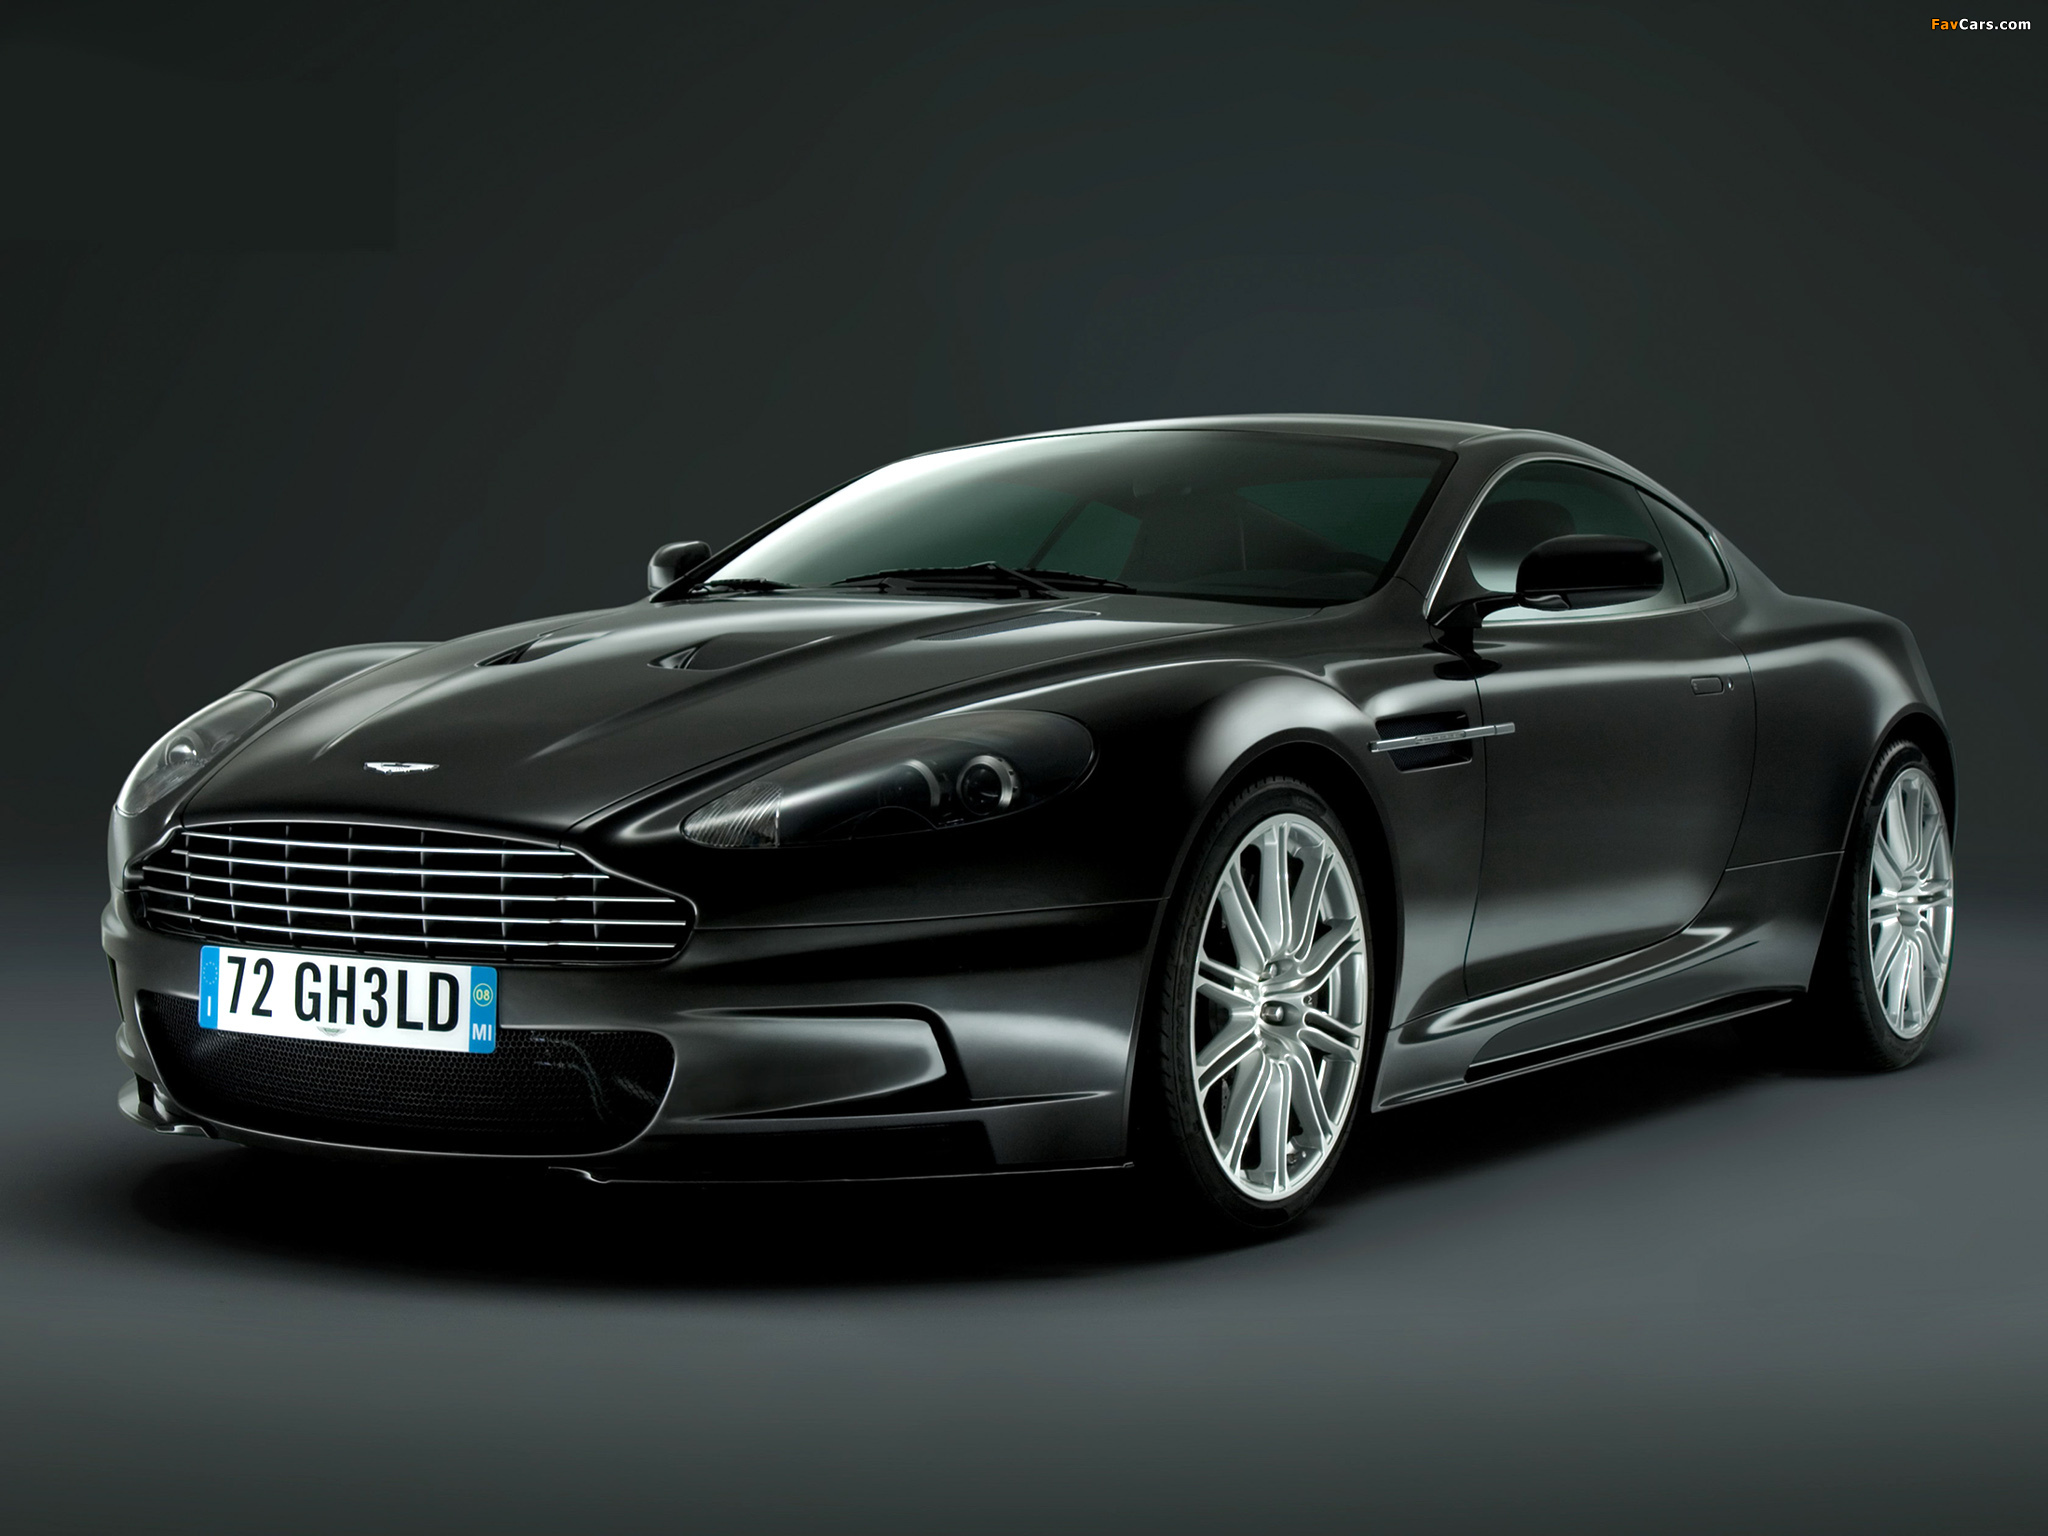 2008 Aston Martin DBS Information and photos MOMENTcar